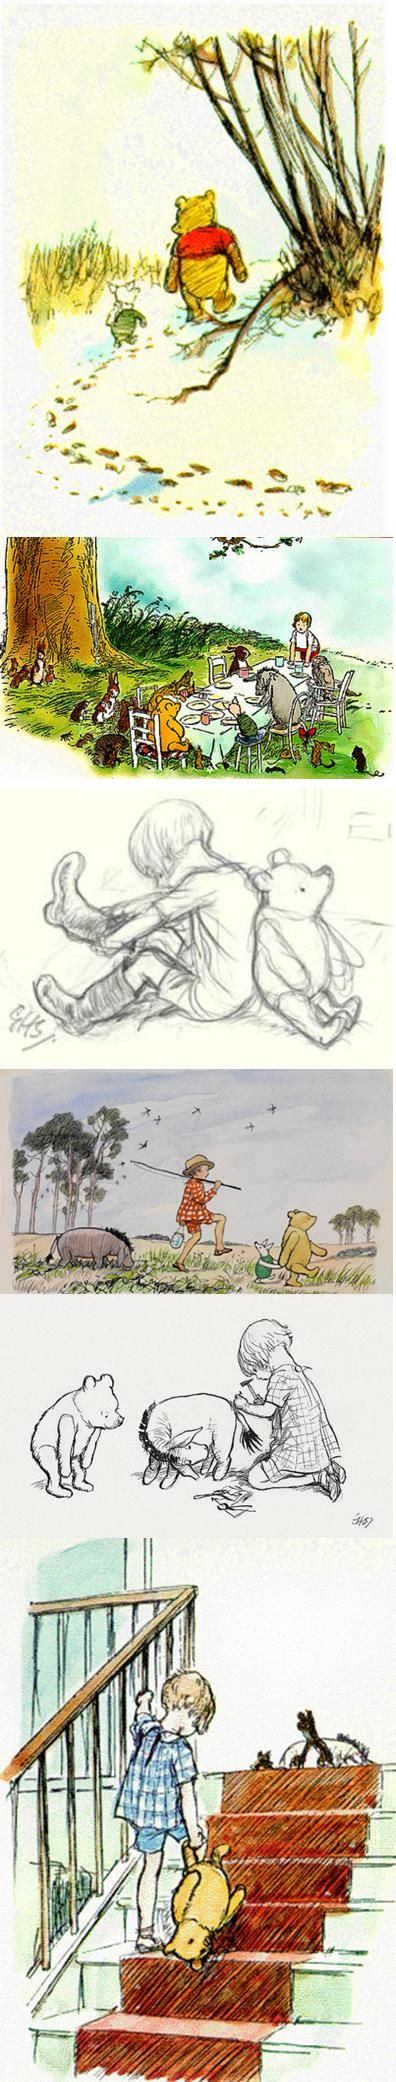 Ernest H. Shepard. I often look to Shepard for inspiration for his simple and brilliant illustrations, that tell a narrative so clearly.